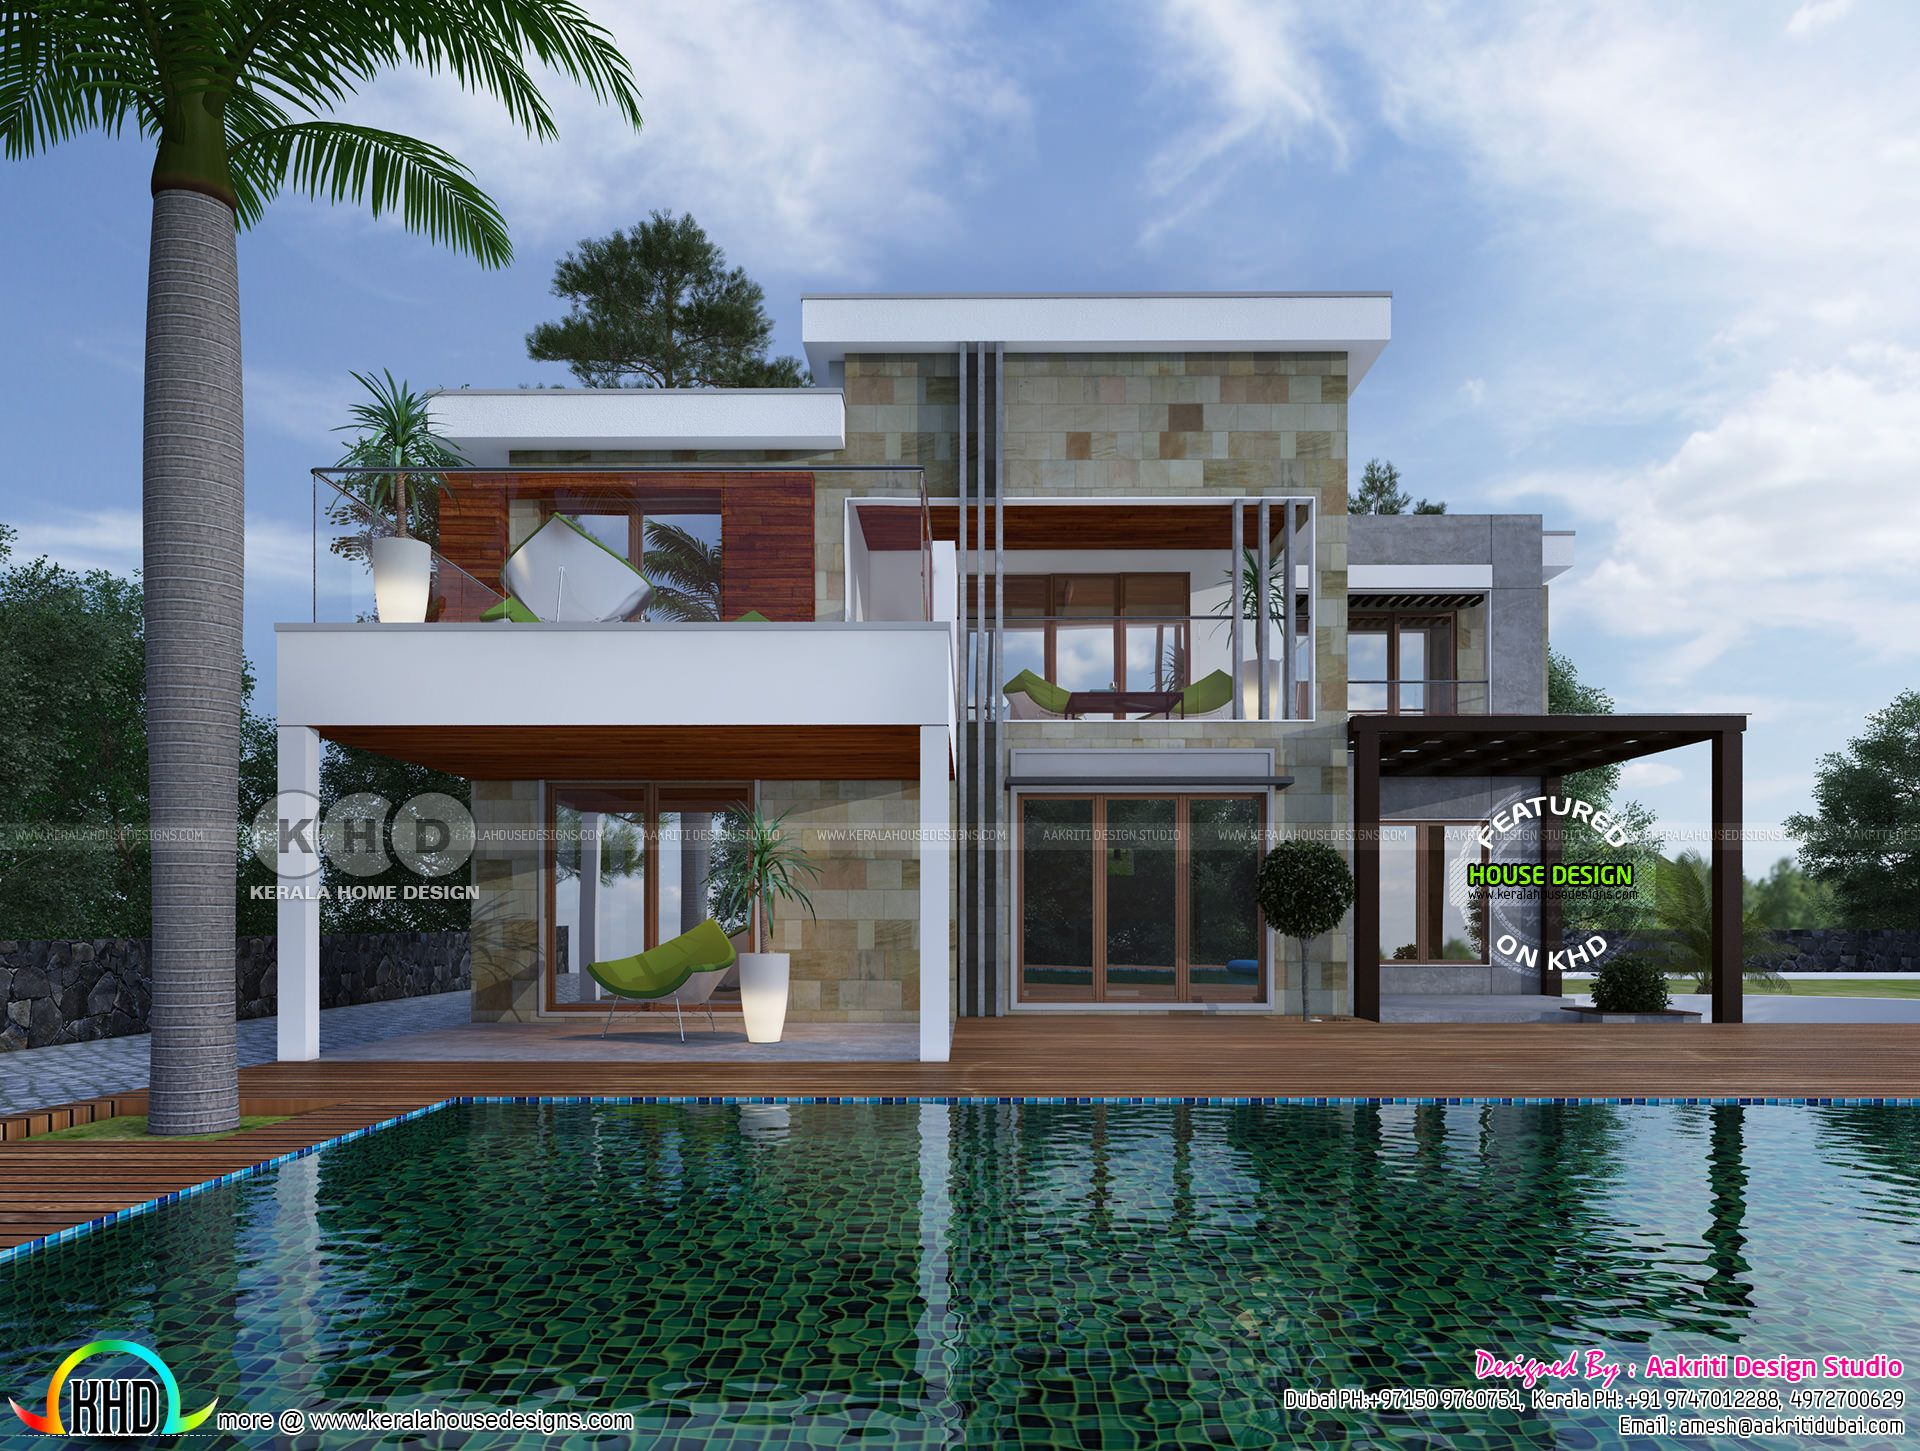 4 Bedroom Flat Roof House With Pool Duplex House Design Pool House Plans Flat Roof House